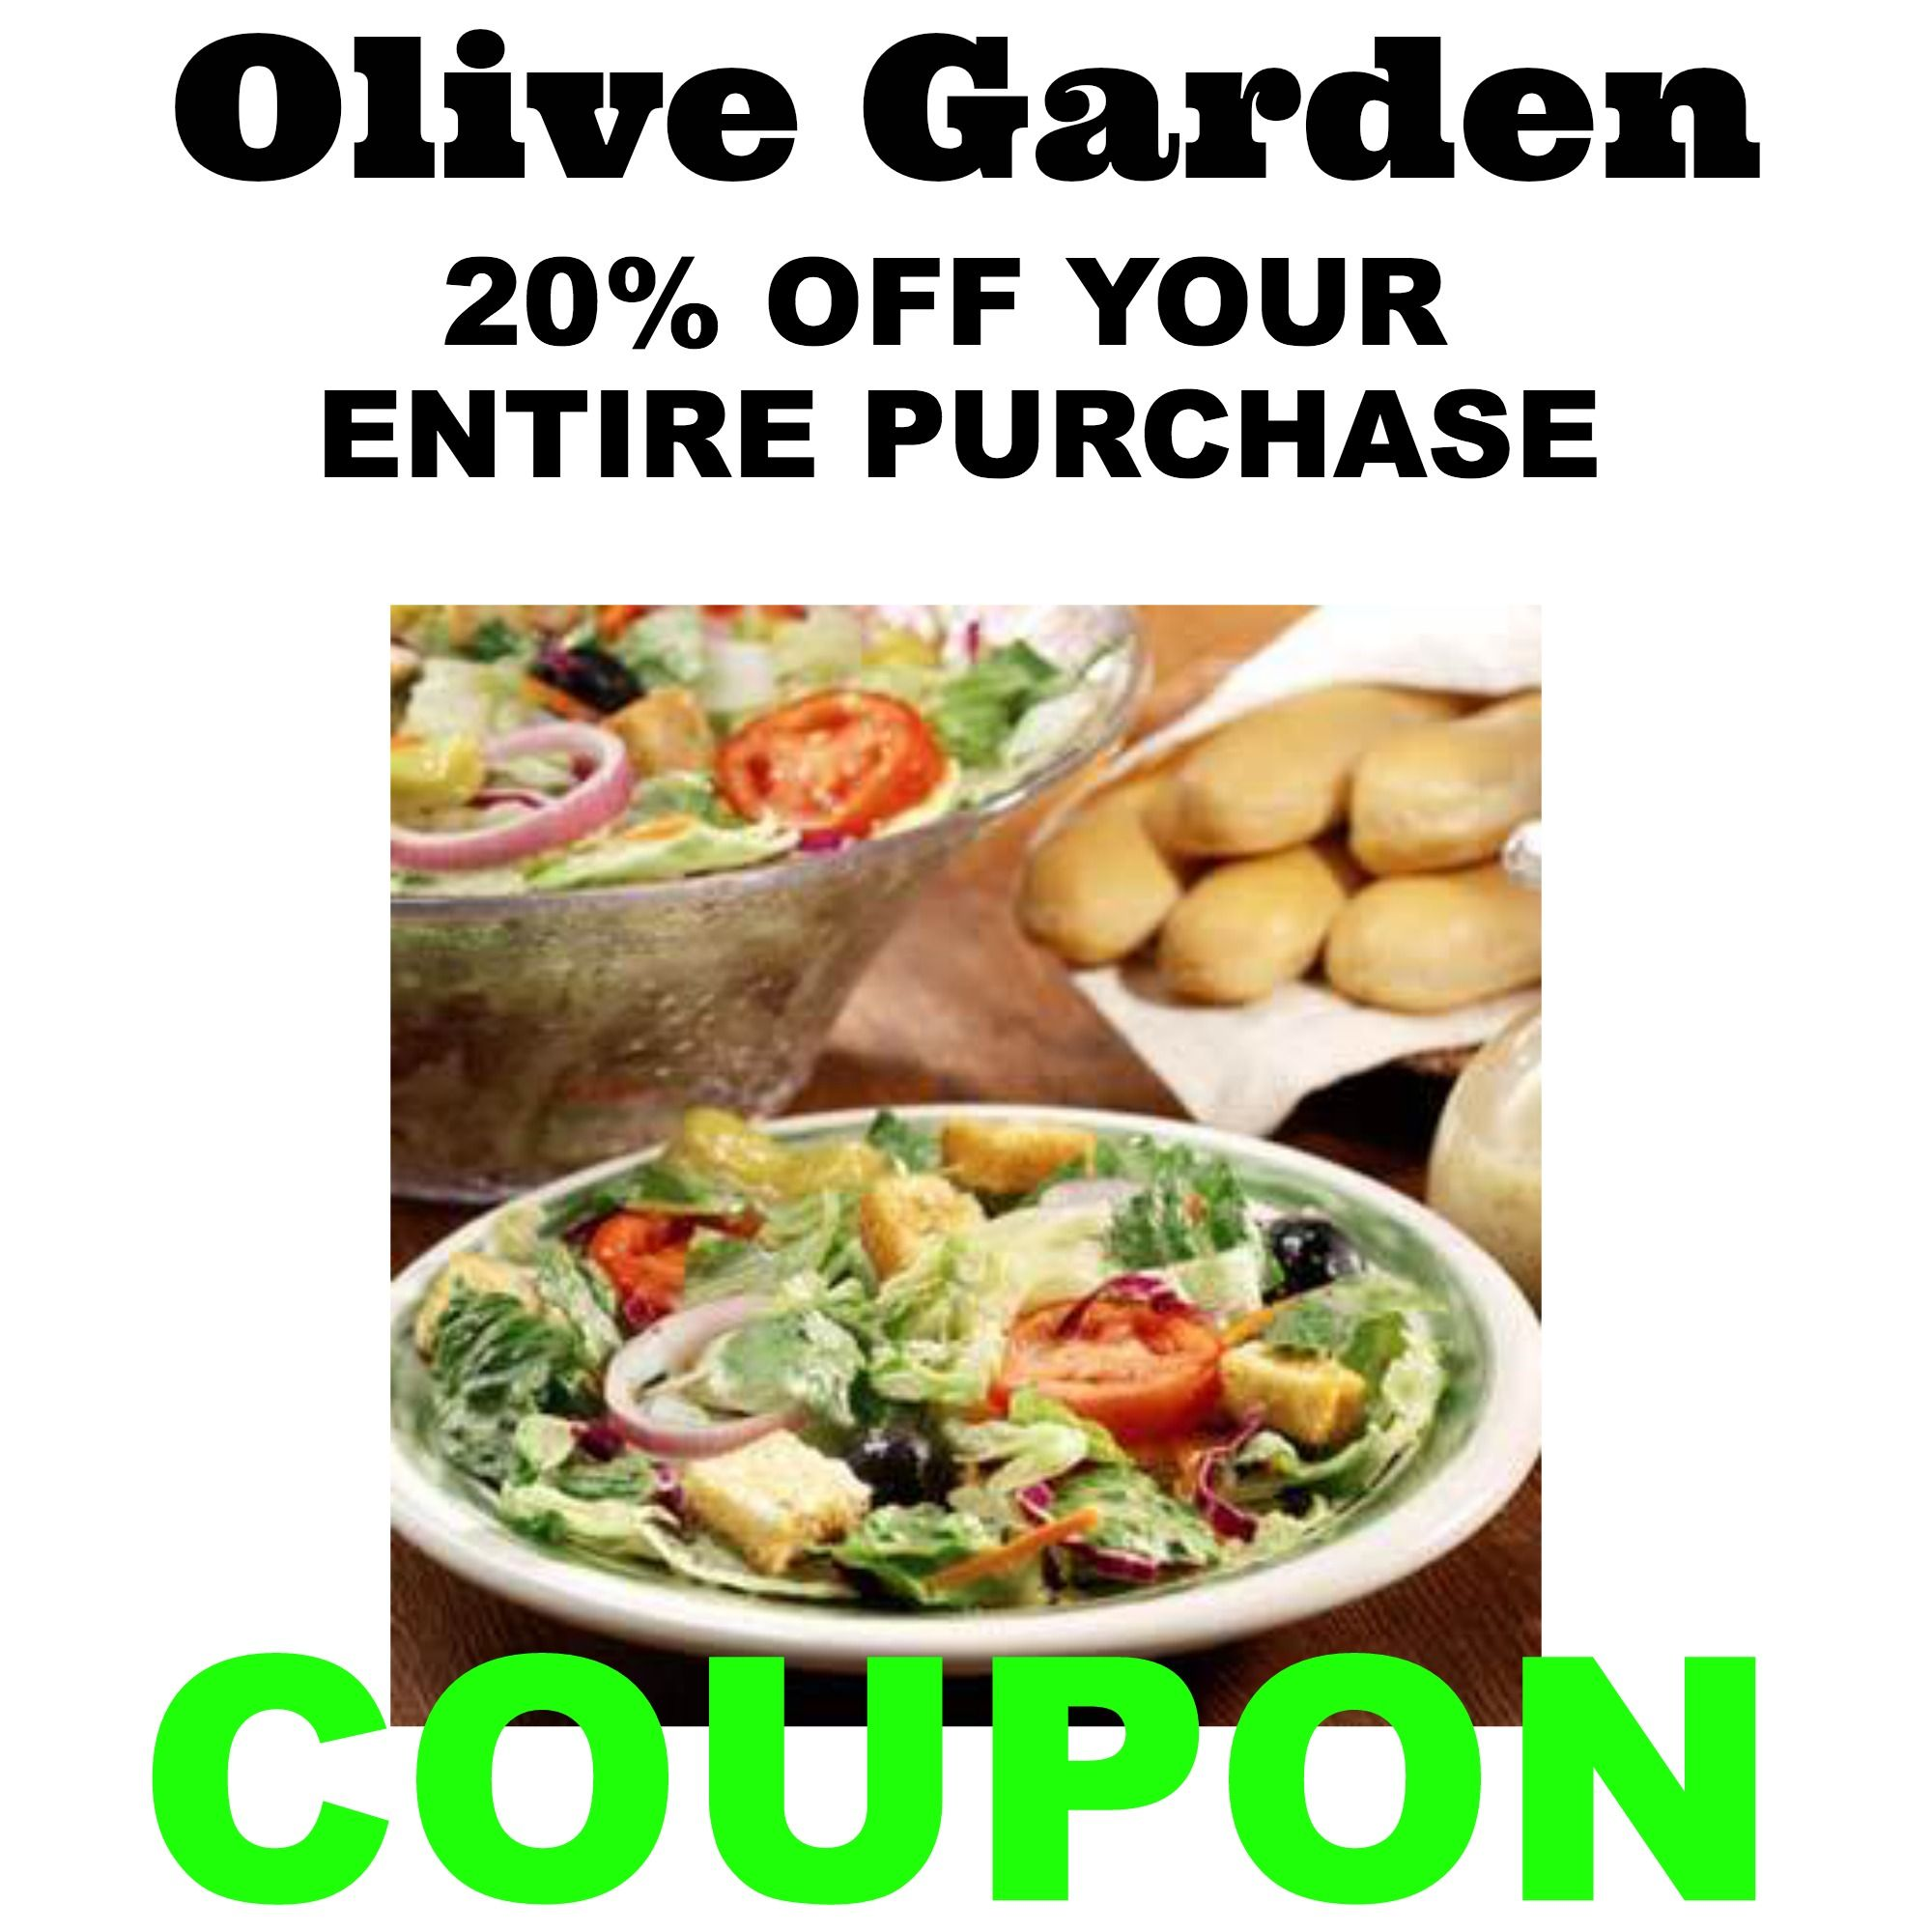 olive garden coupons and discounts are available to help you save money when dining at an olive garden italian restaurant